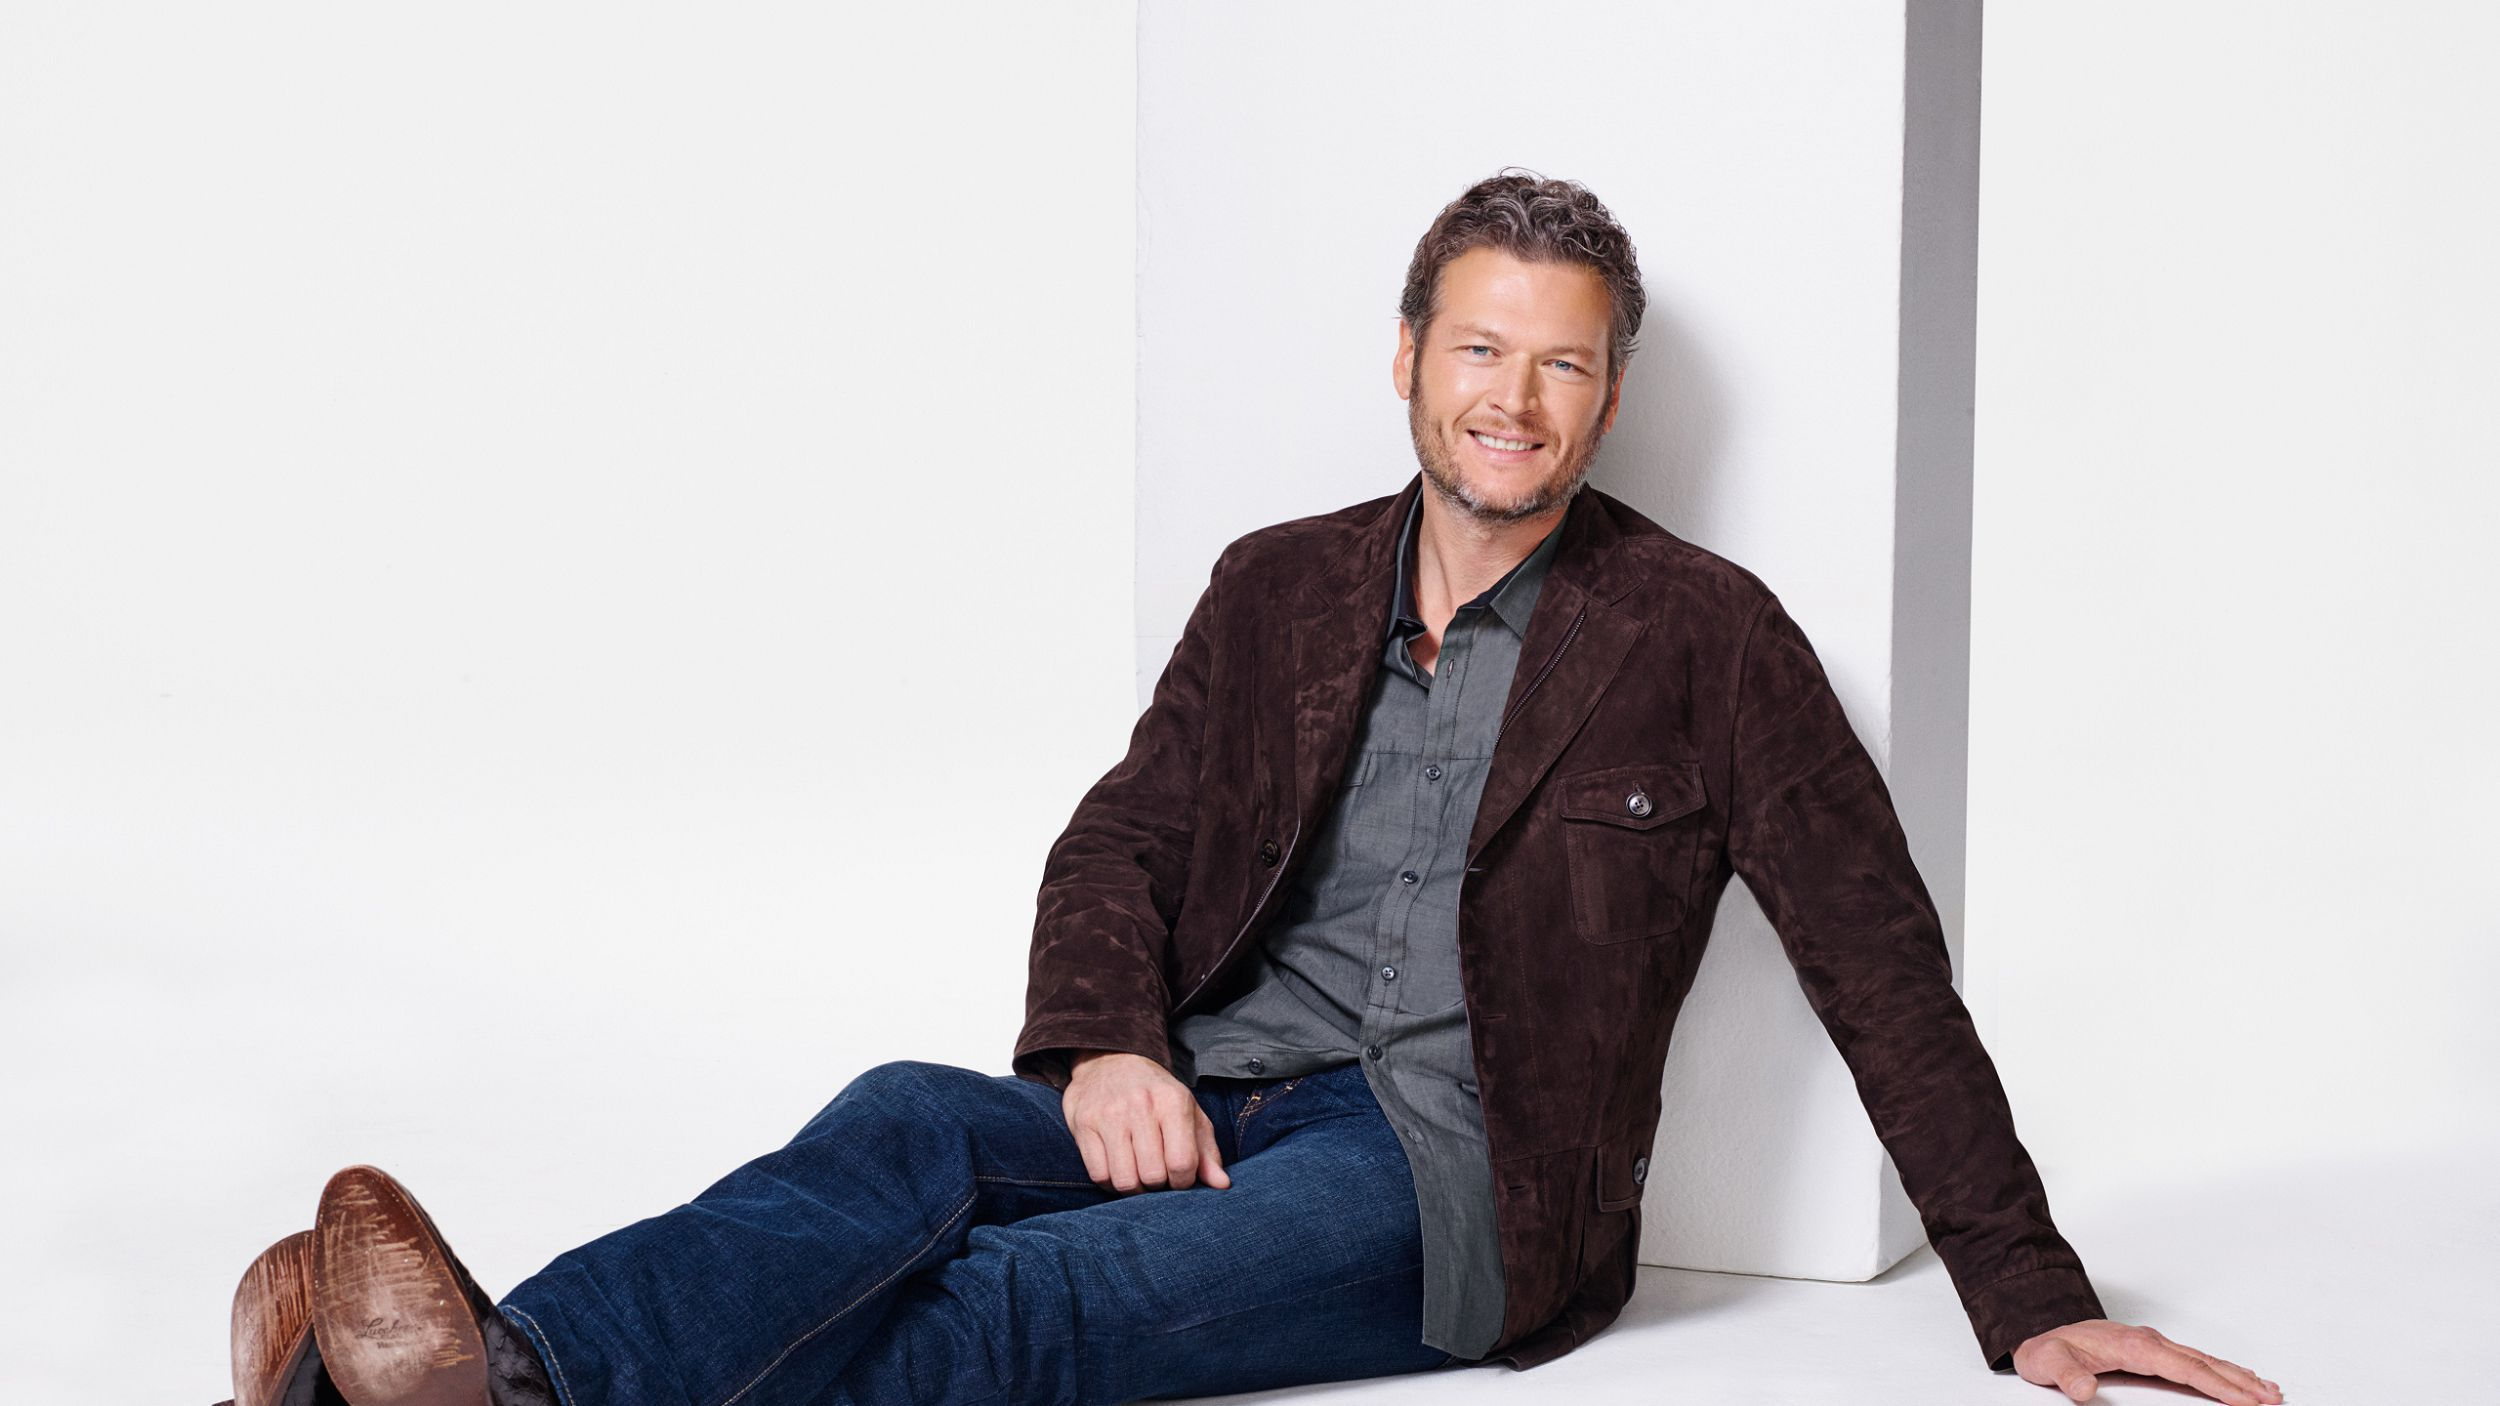 Blake Shelton Beautiful